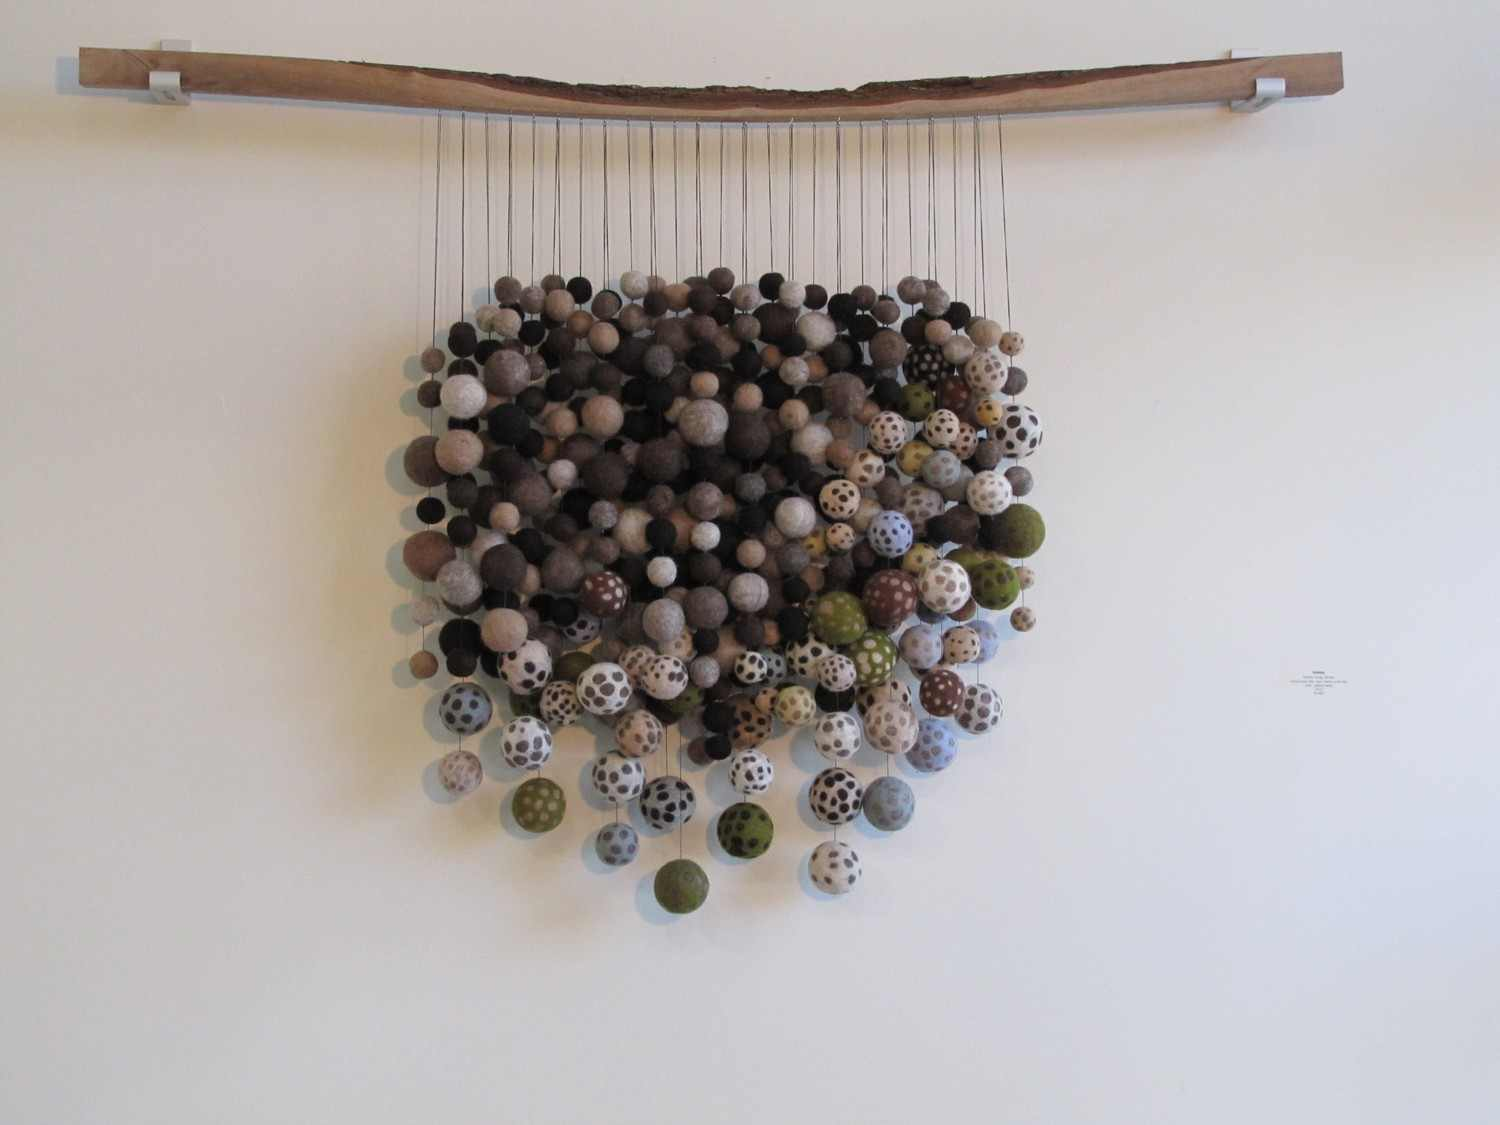 Felted wool ball art sculpture